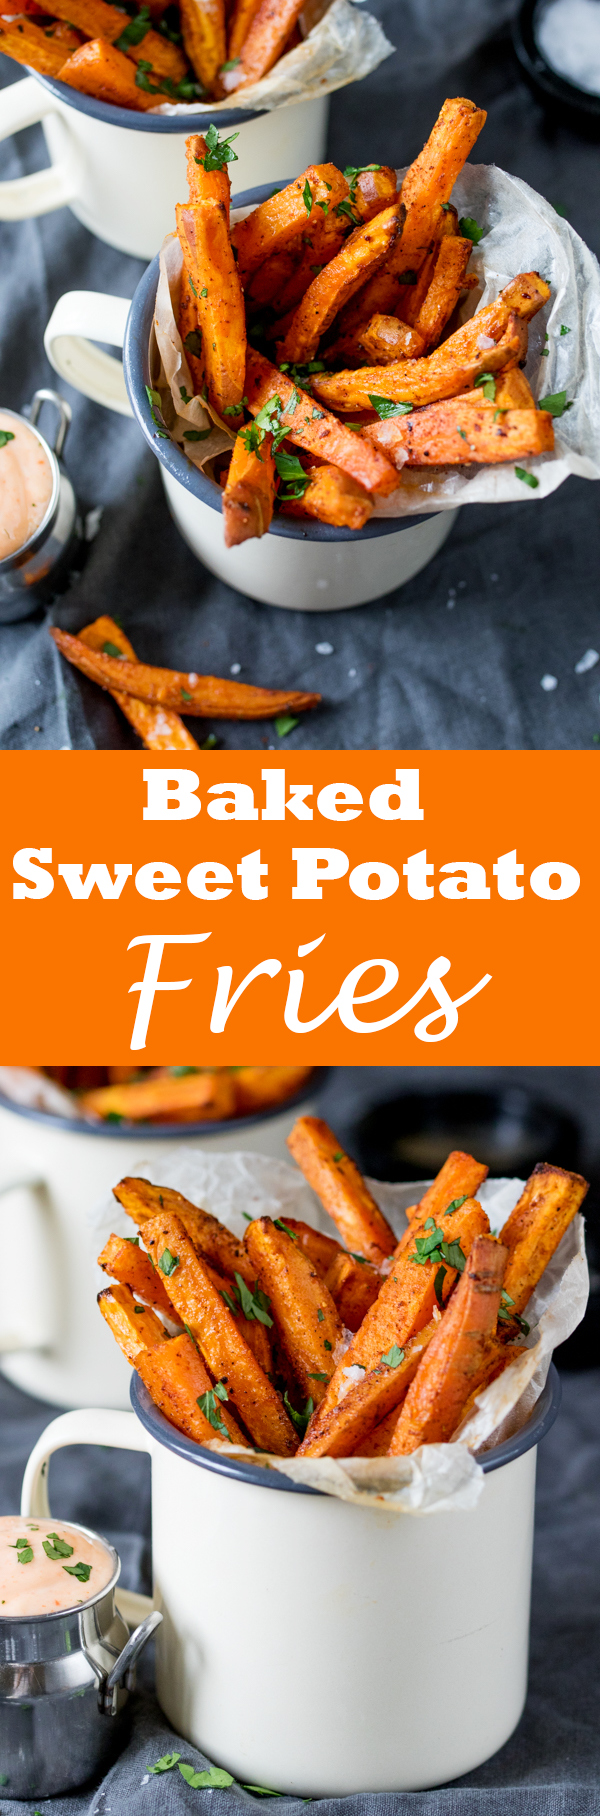 baked sweet potato fries pin